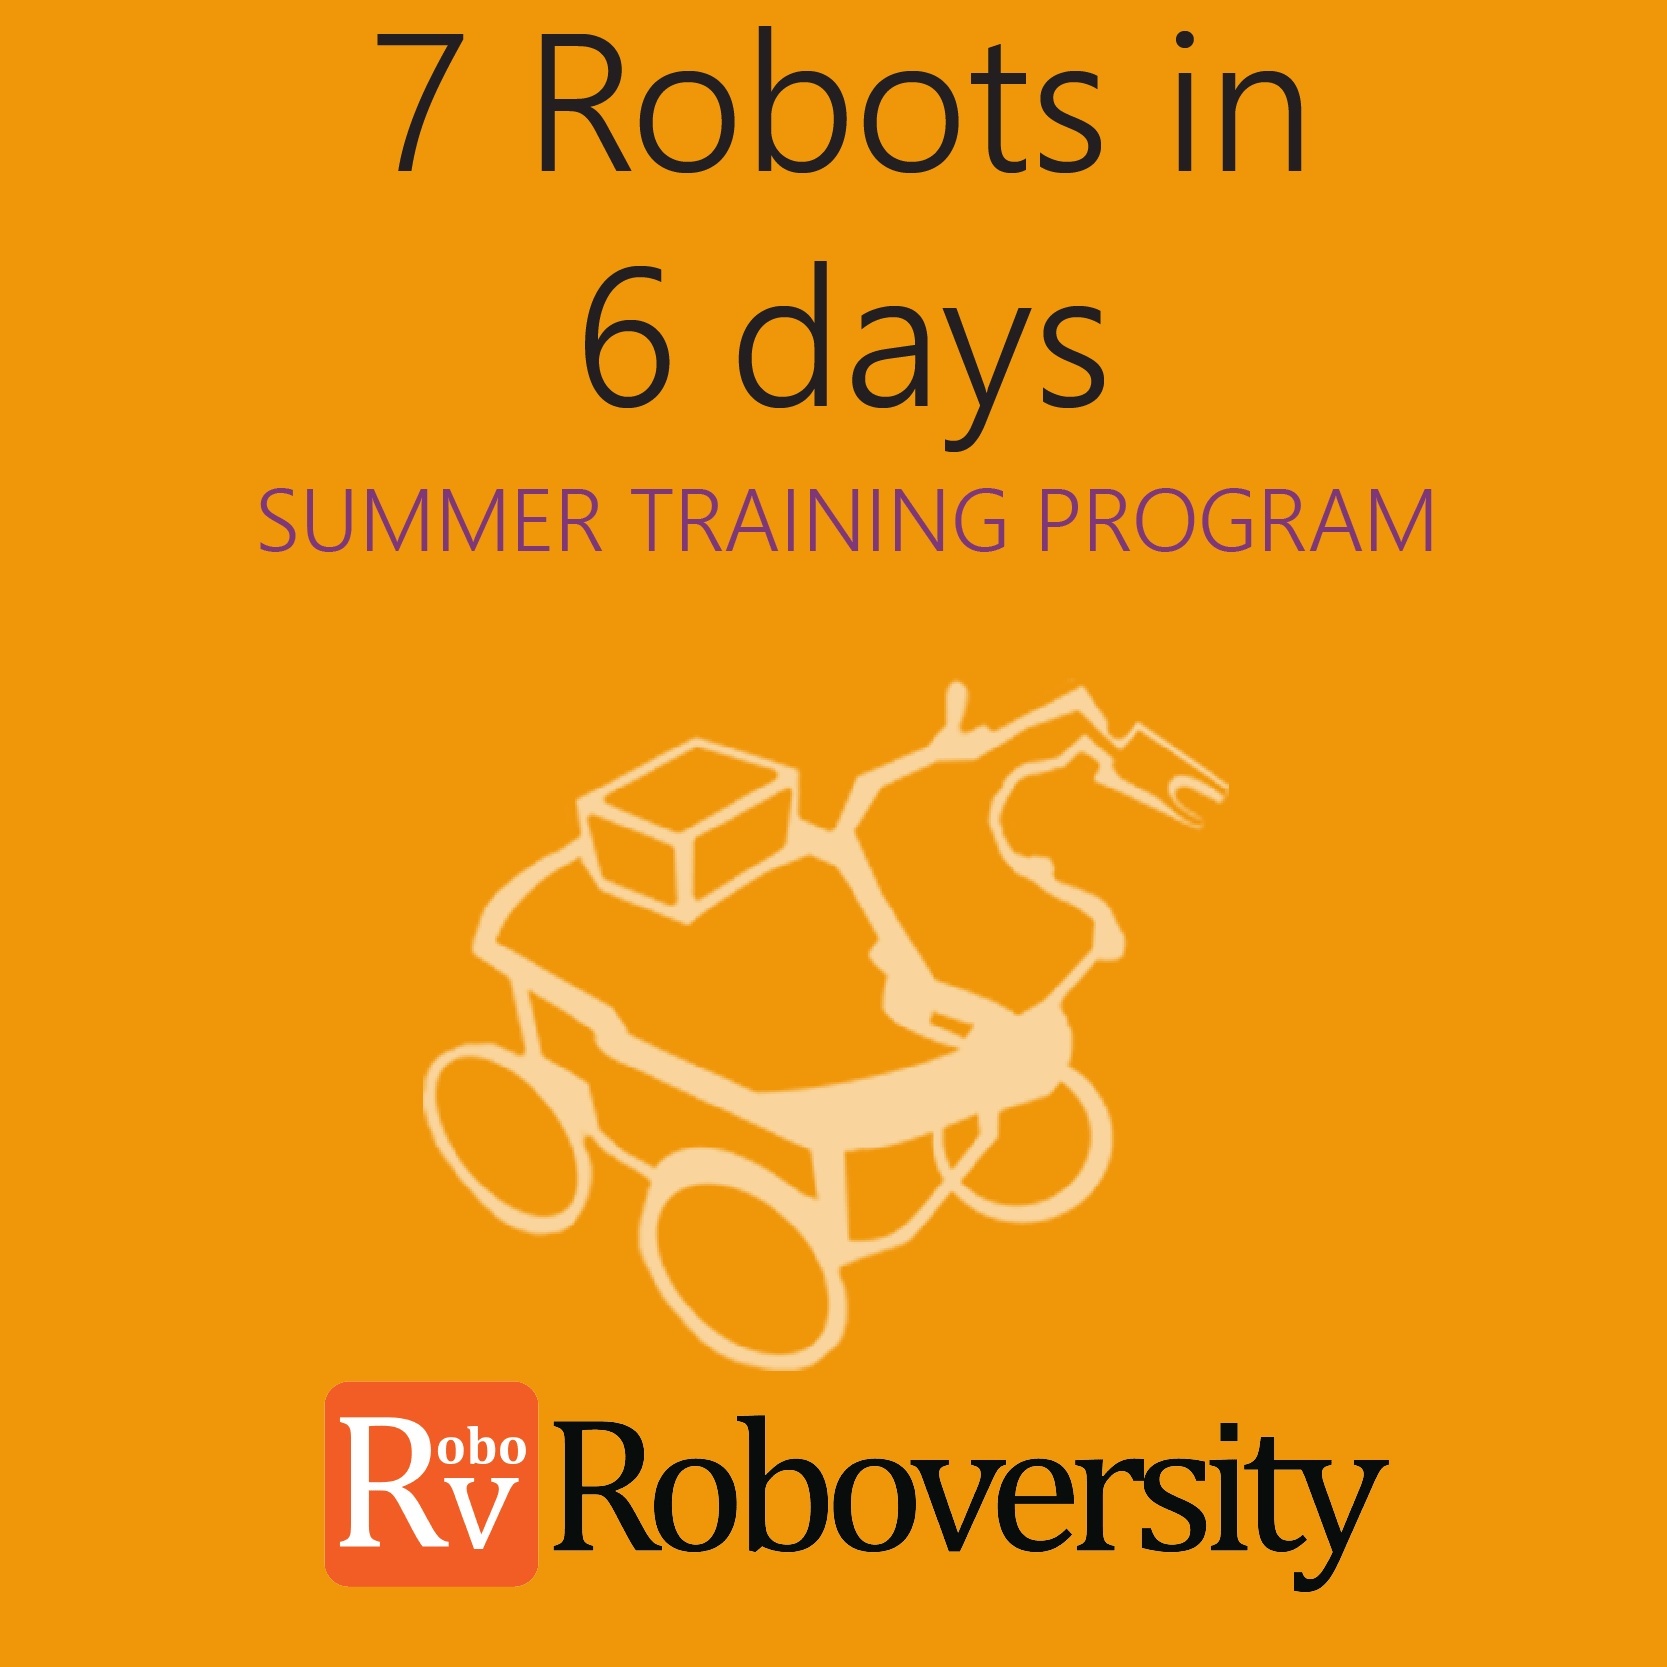 Summer Training Program on 7 Robots in 6 Days  at Skyfi Labs Center, Nesto Finance Institute, T-Nagar Workshop